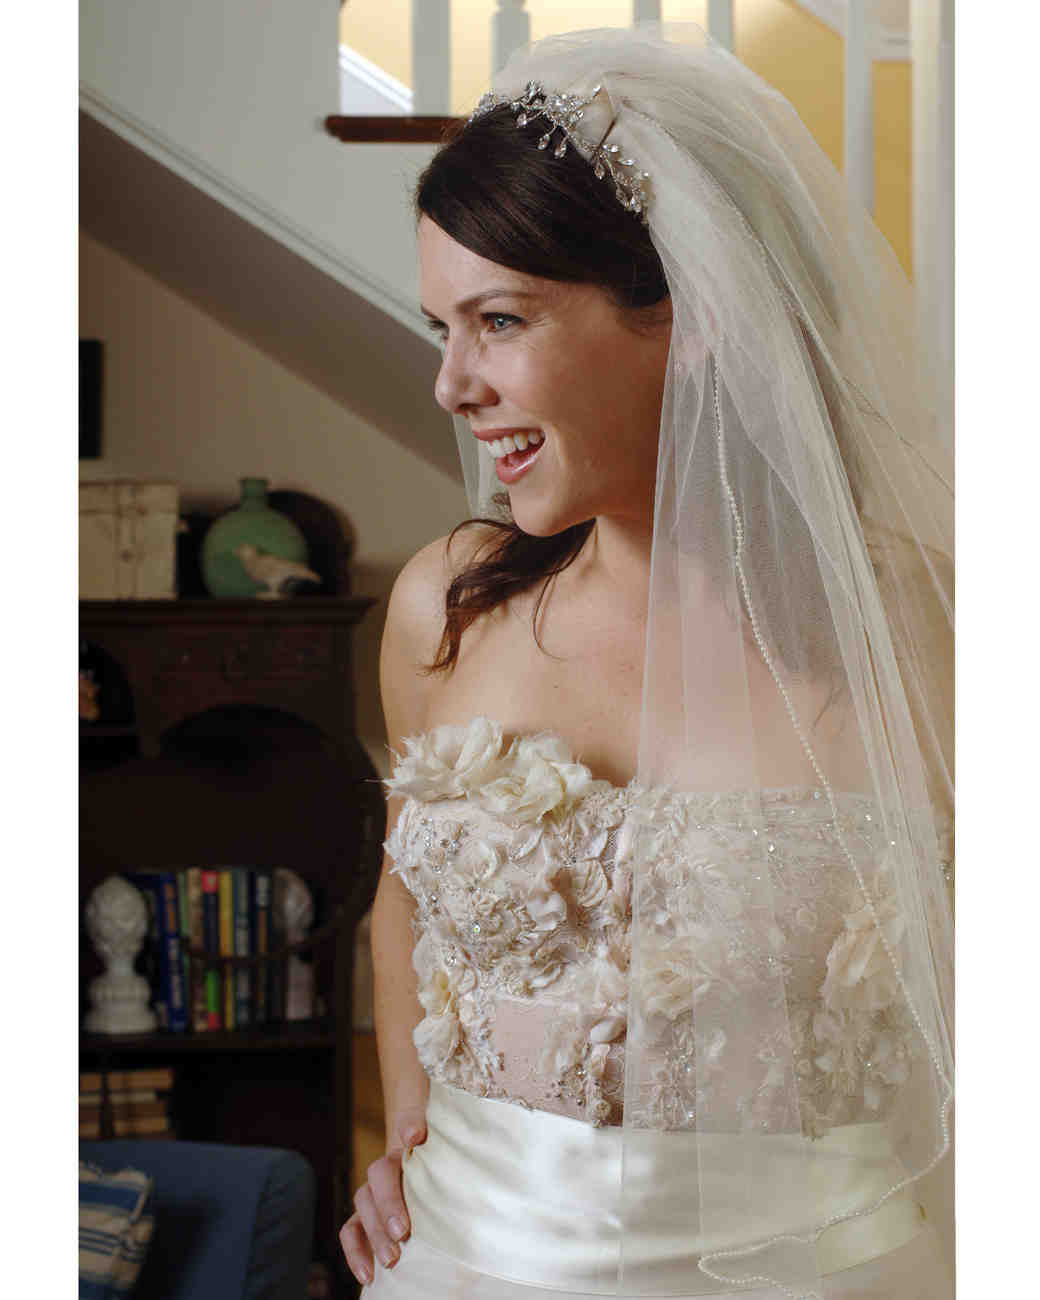 gilmore-girls-wedding-lorelai-wedding-dress-1015.jpg